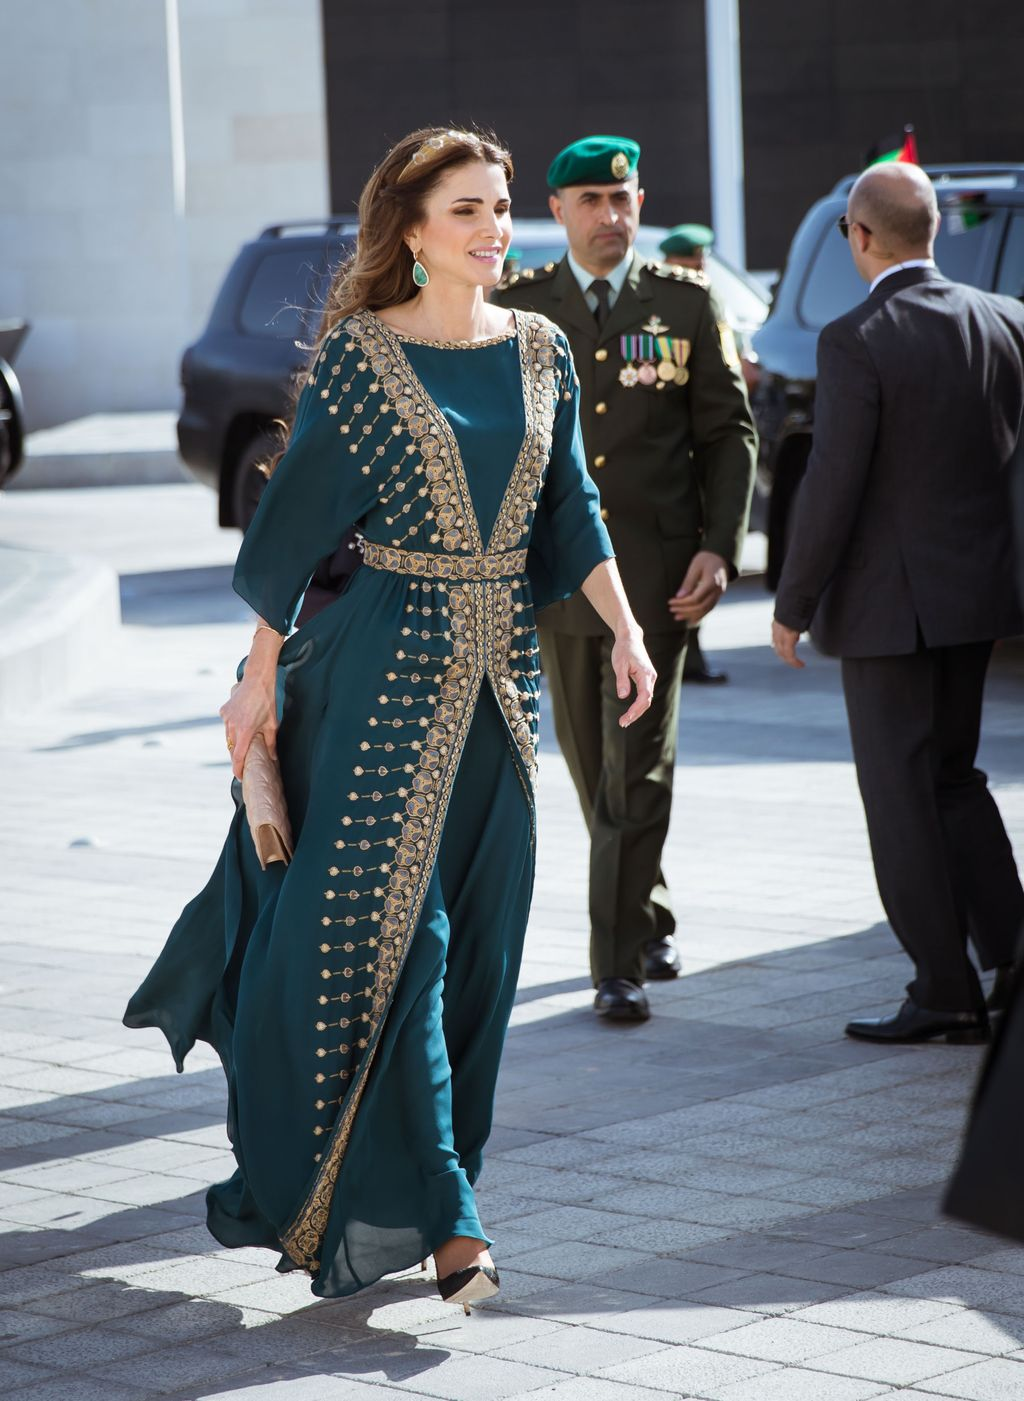 MADRID, SPAIN - NOVEMBER 19:  Queen Rania Abdullah of Jordan visits the Prado Media Lab cultural center on November 19, 2015 in Madrid, Spain.  (Photo by Carlos Alvarez/Getty Images)